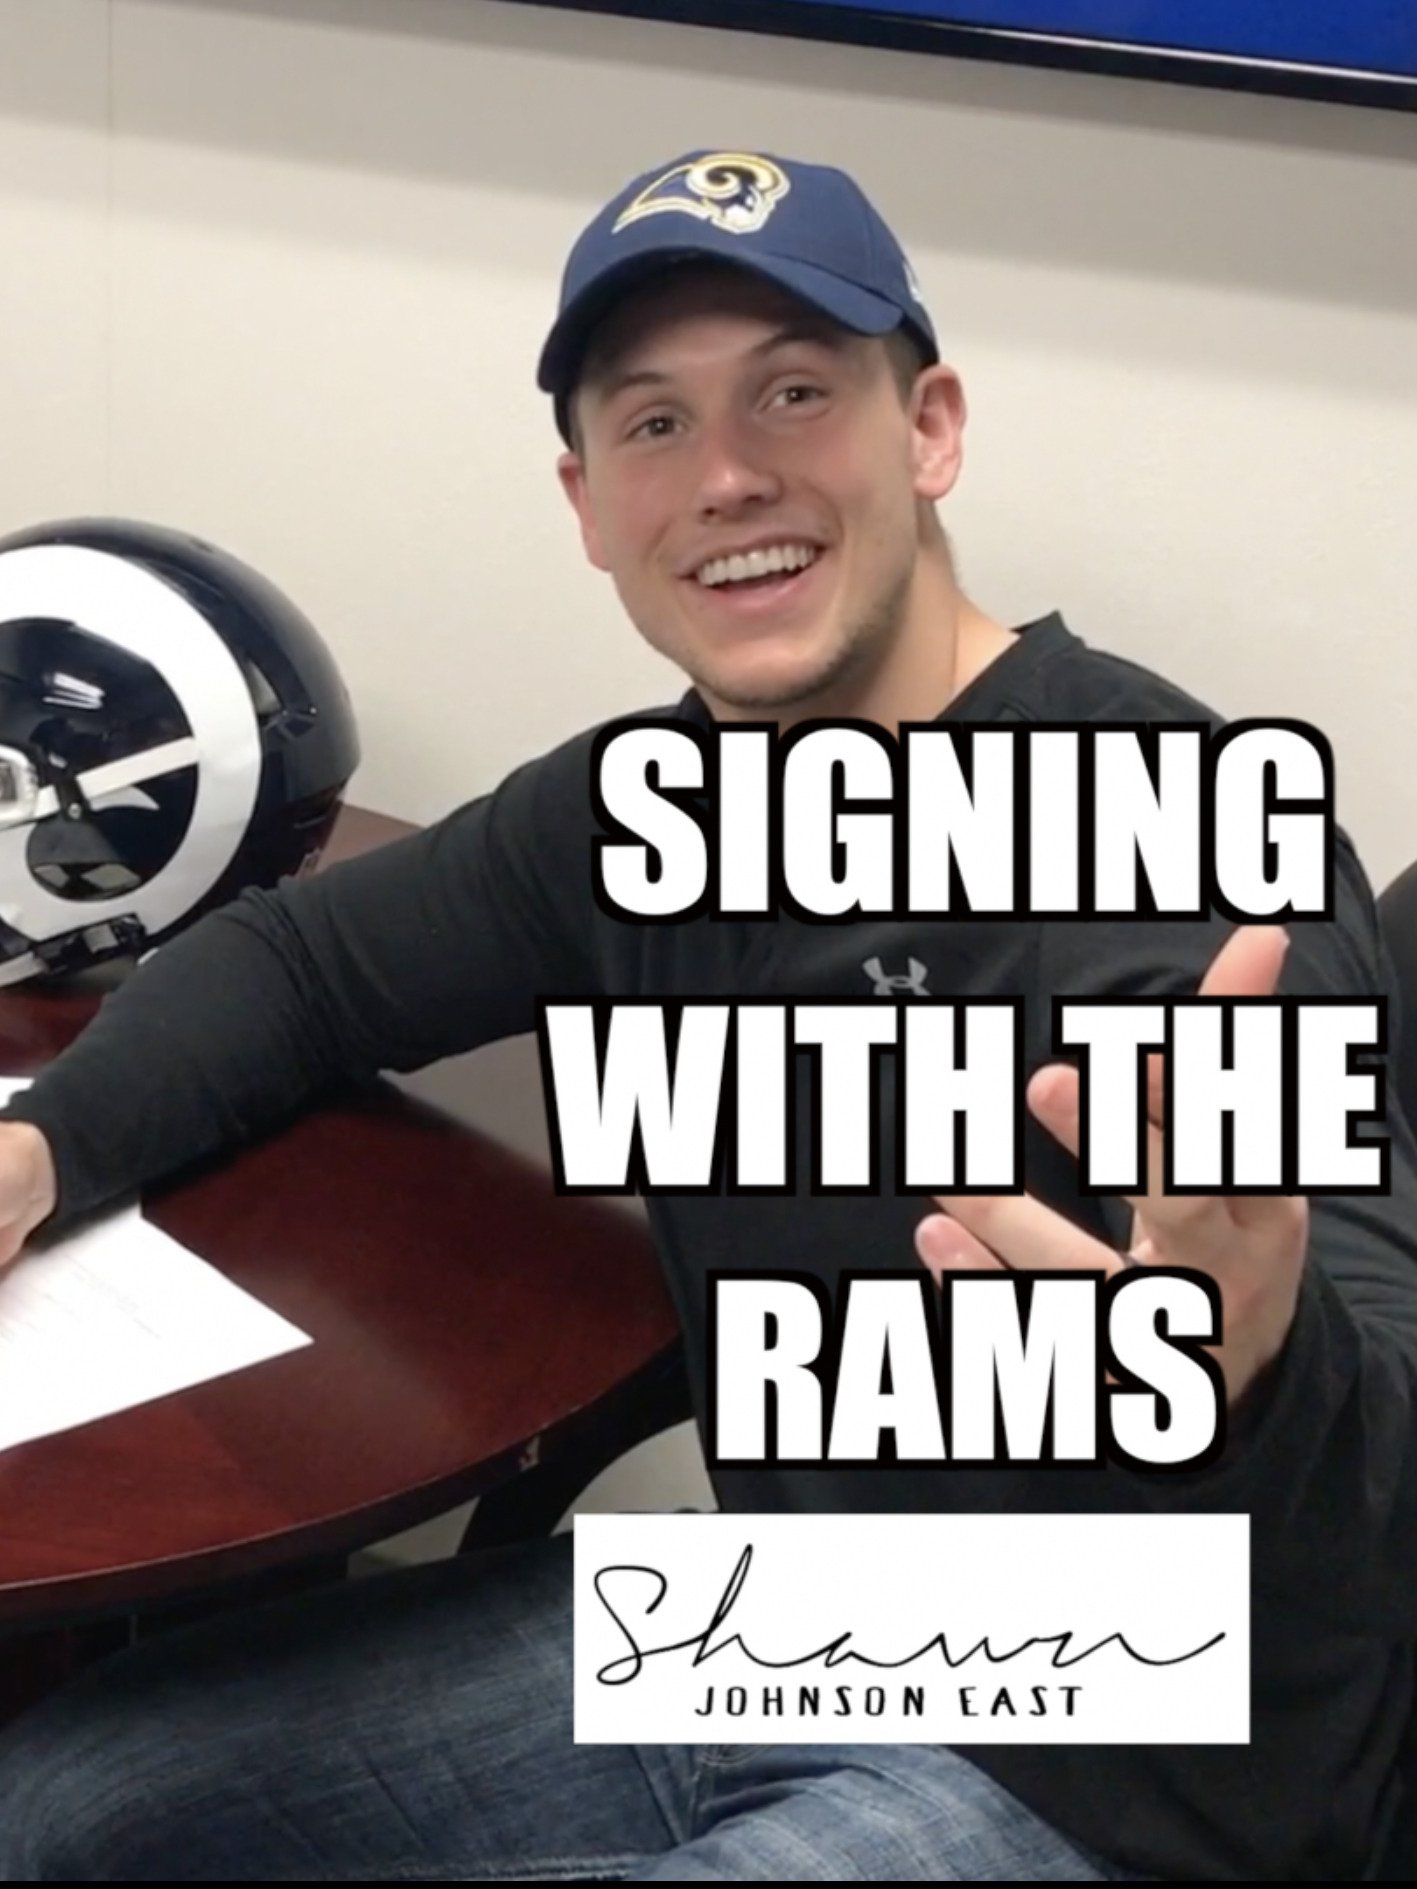 Signing with the Rams